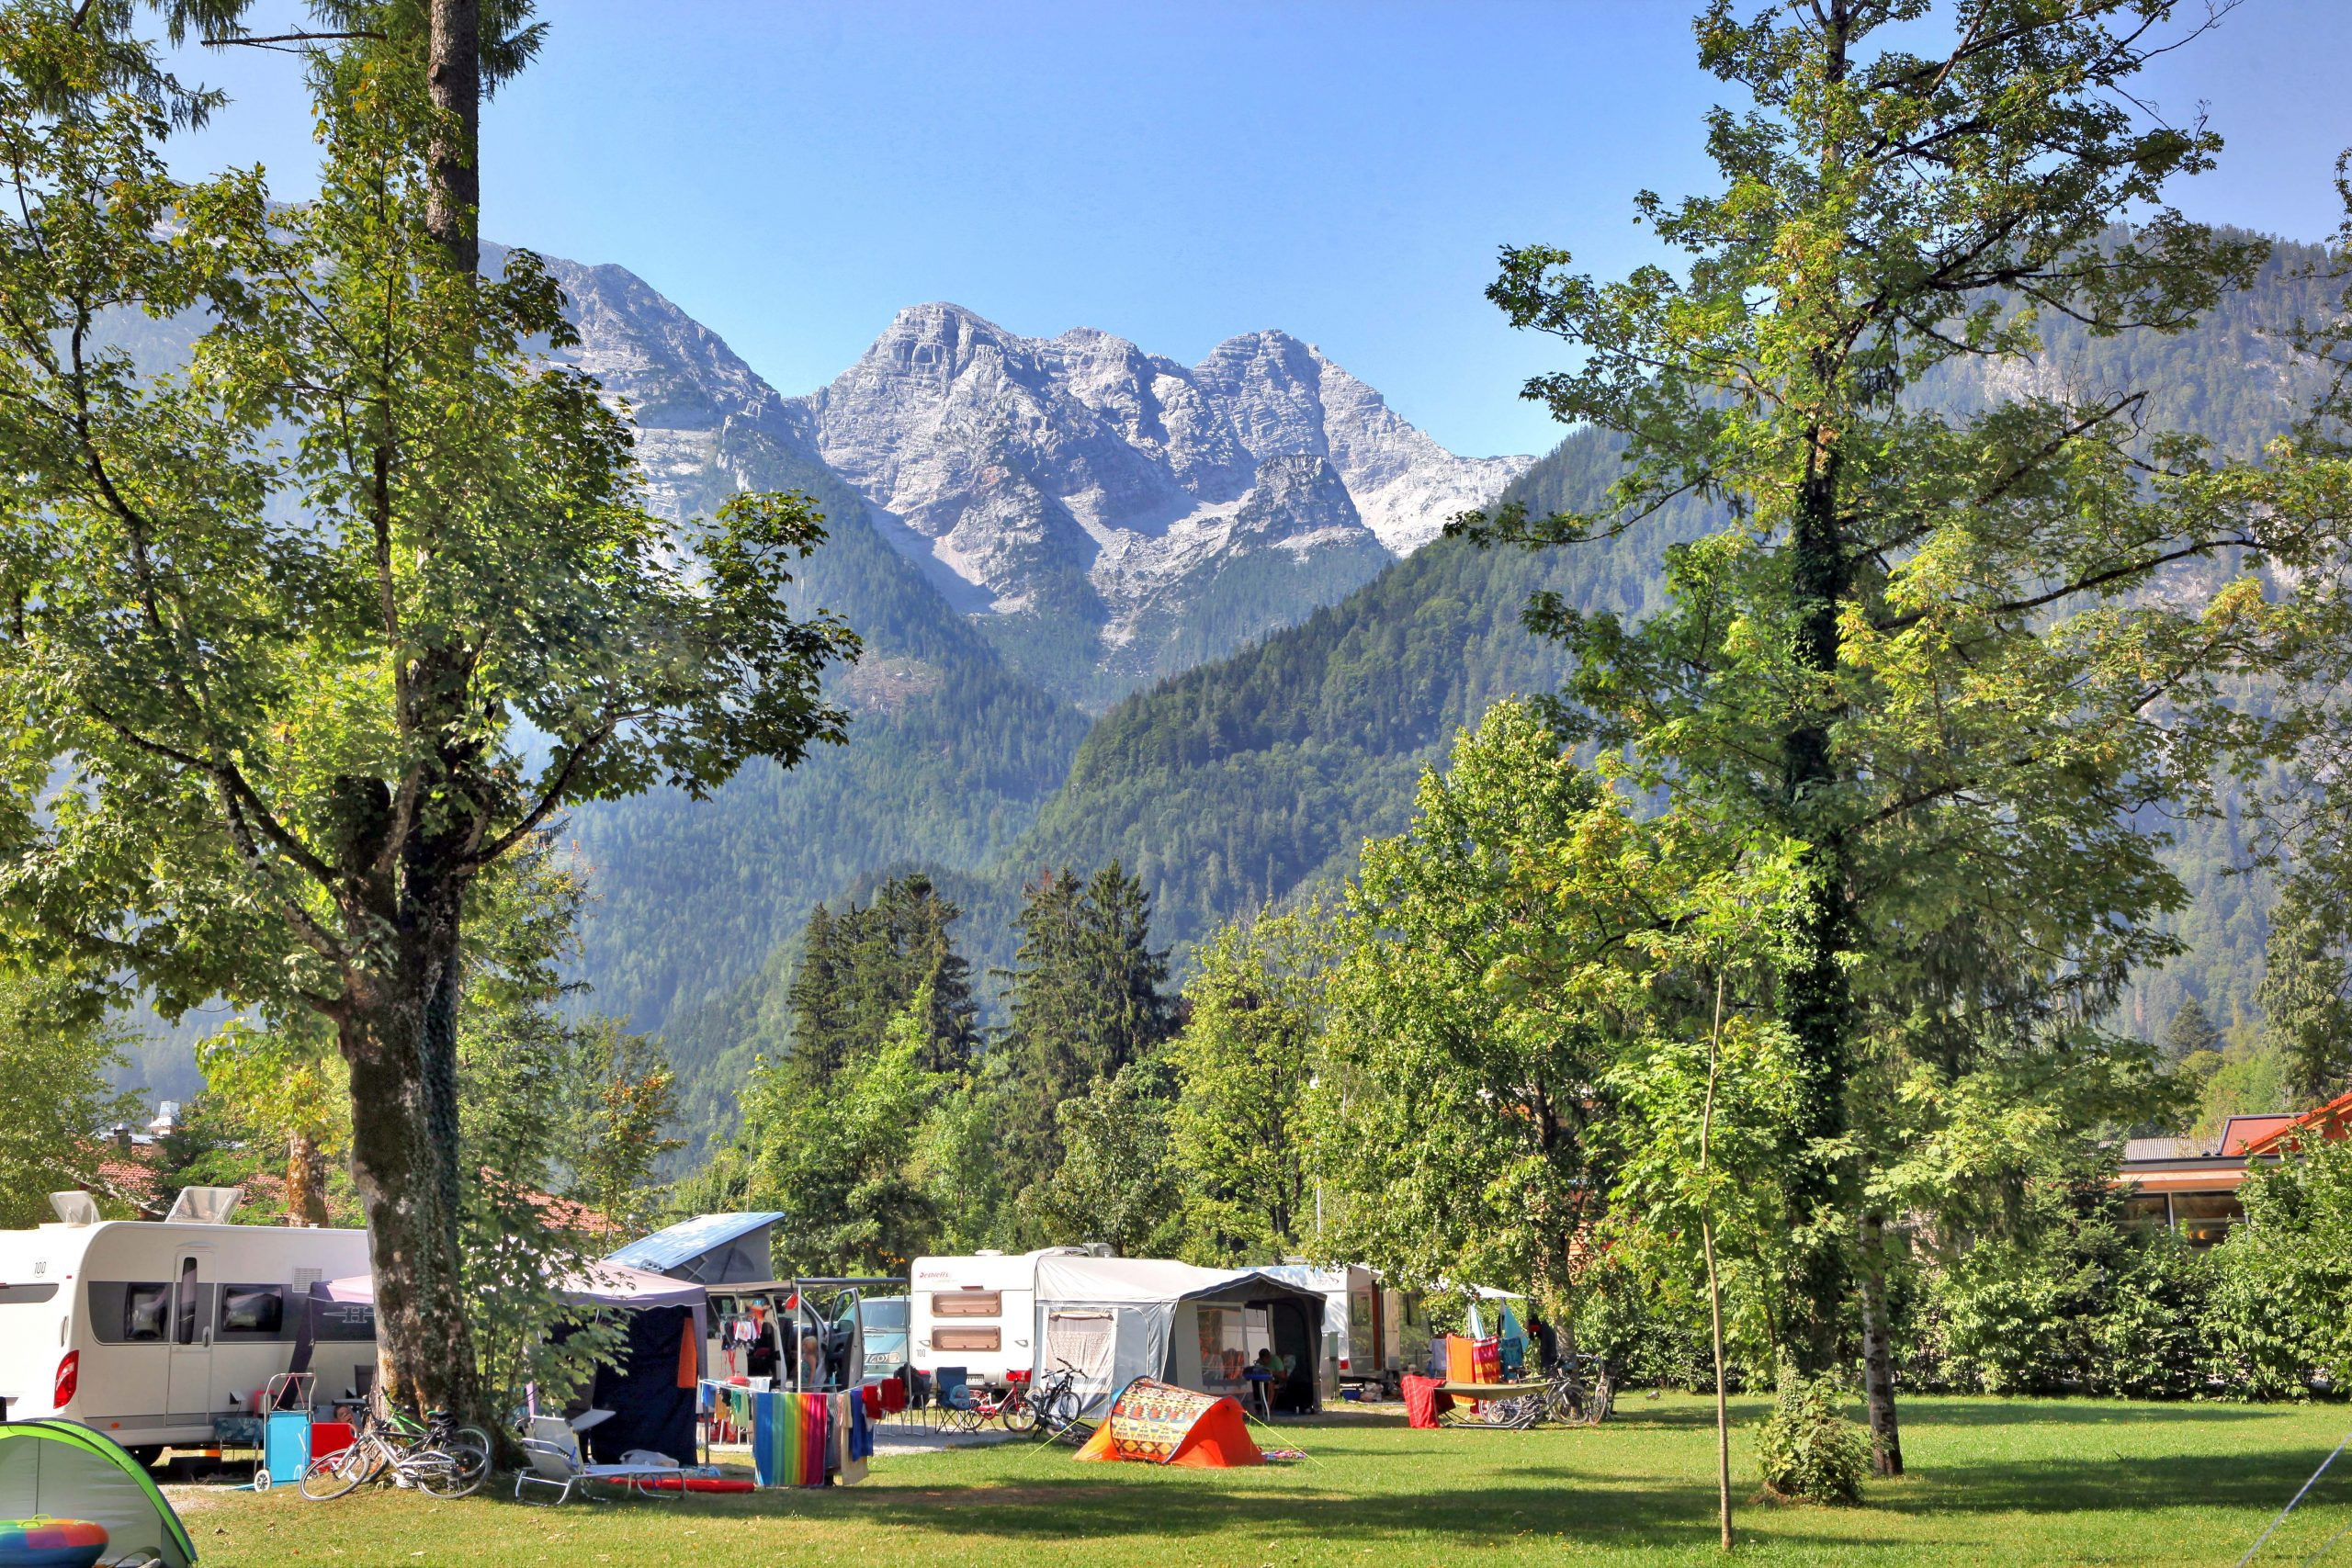 Grubhof Camping in Lofer